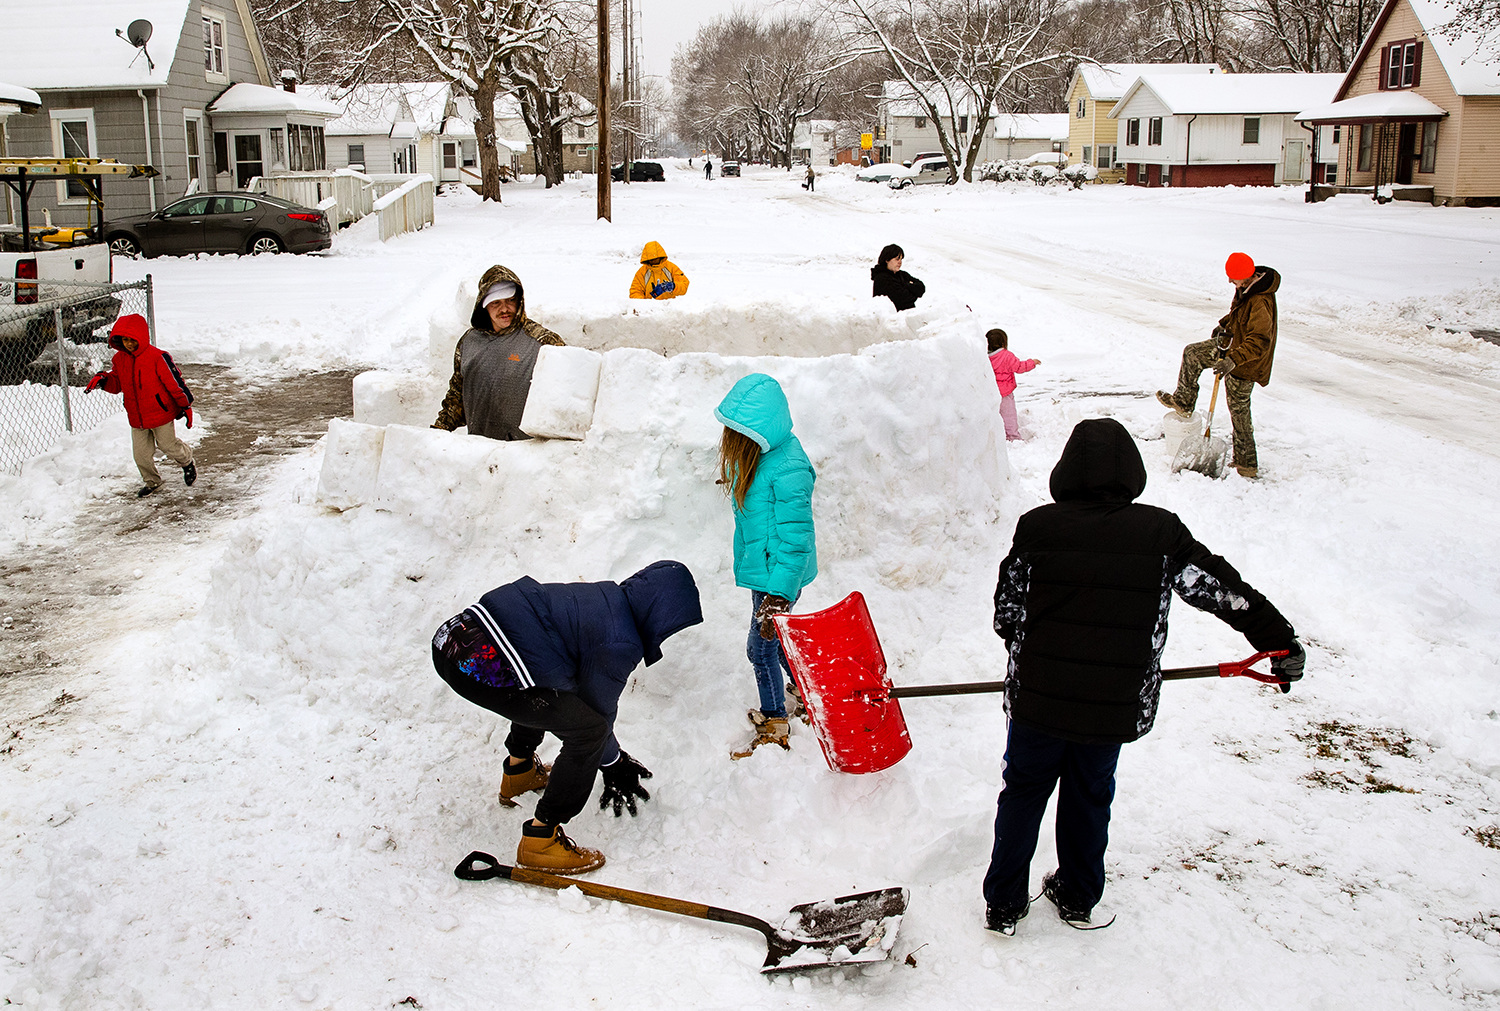 """Michael Motley had the help of his children, friends and neighbors as he built giant igloo in the front yard of his Springfield home Saturday, Jan. 12, 2019. """"This is what we did when I was a kid,"""" Motley said. [Ted Schurter/The State Journal-Register]"""